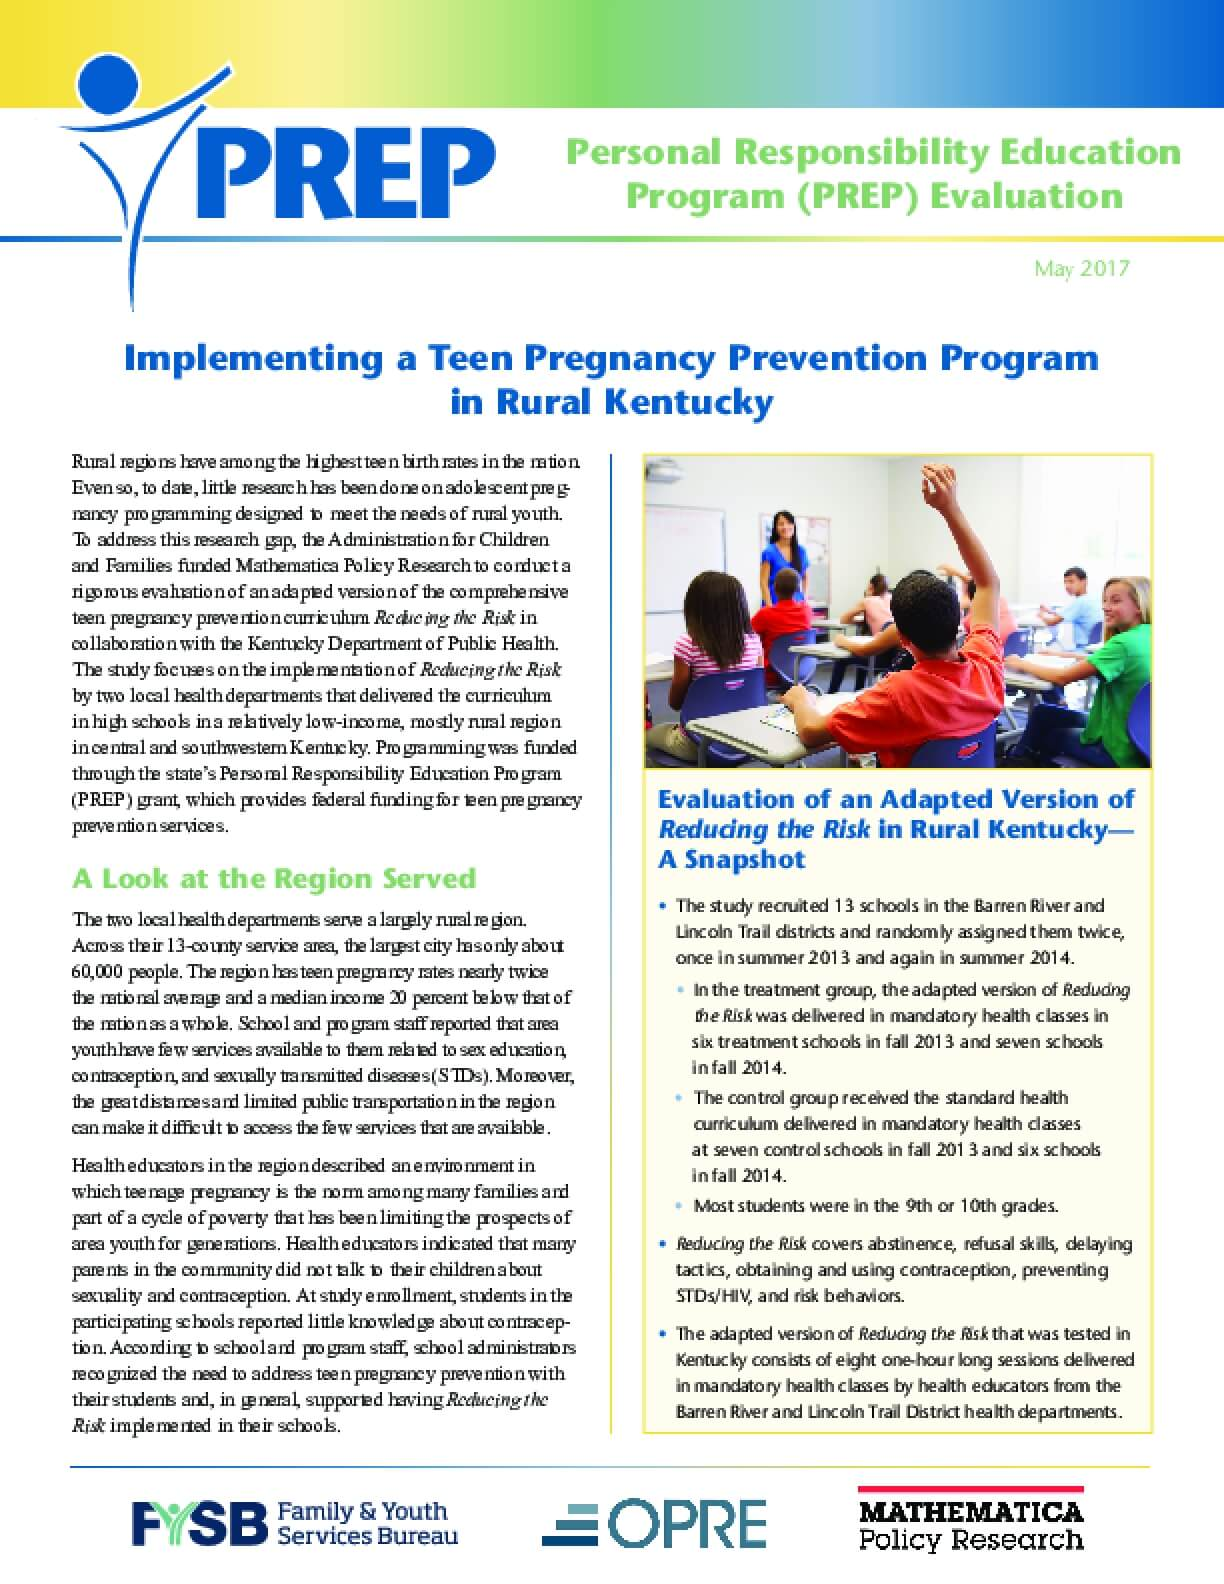 Implementing a Teen Pregnancy Prevention Program in Rural Kentucky